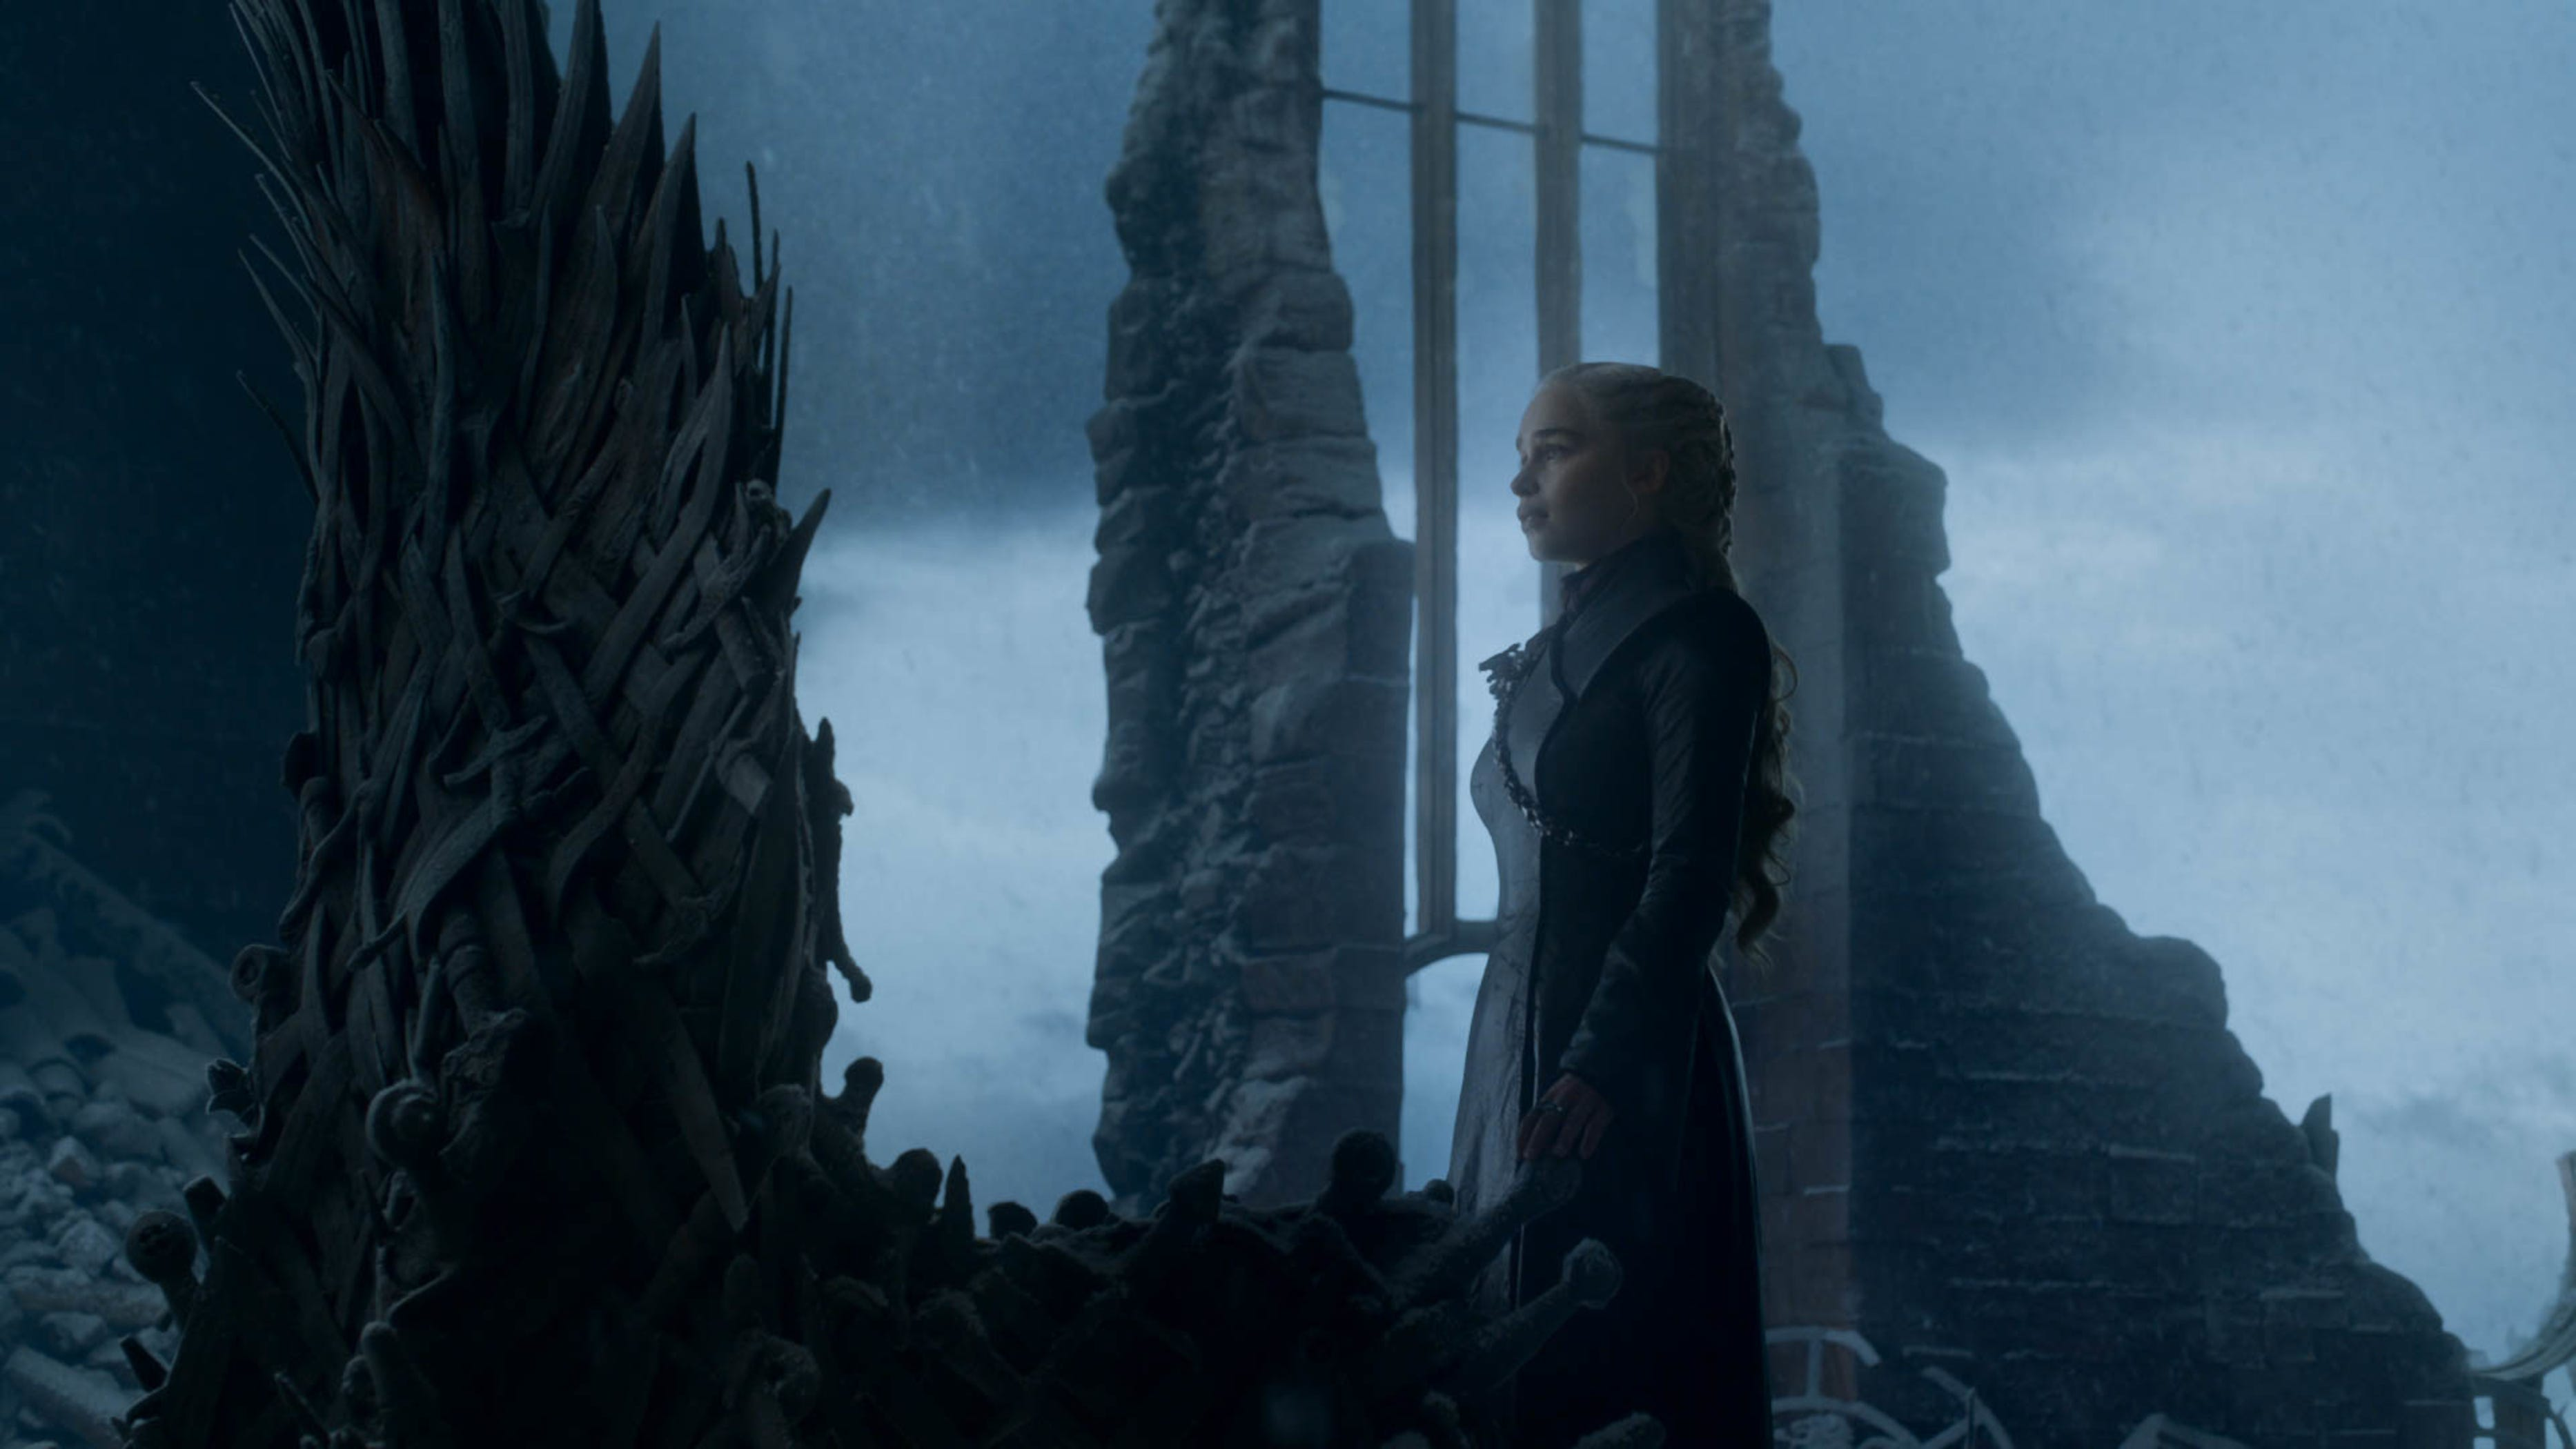 'Game of Thrones' finale sets records with 13.6 million TV viewers, 19.3 million overall